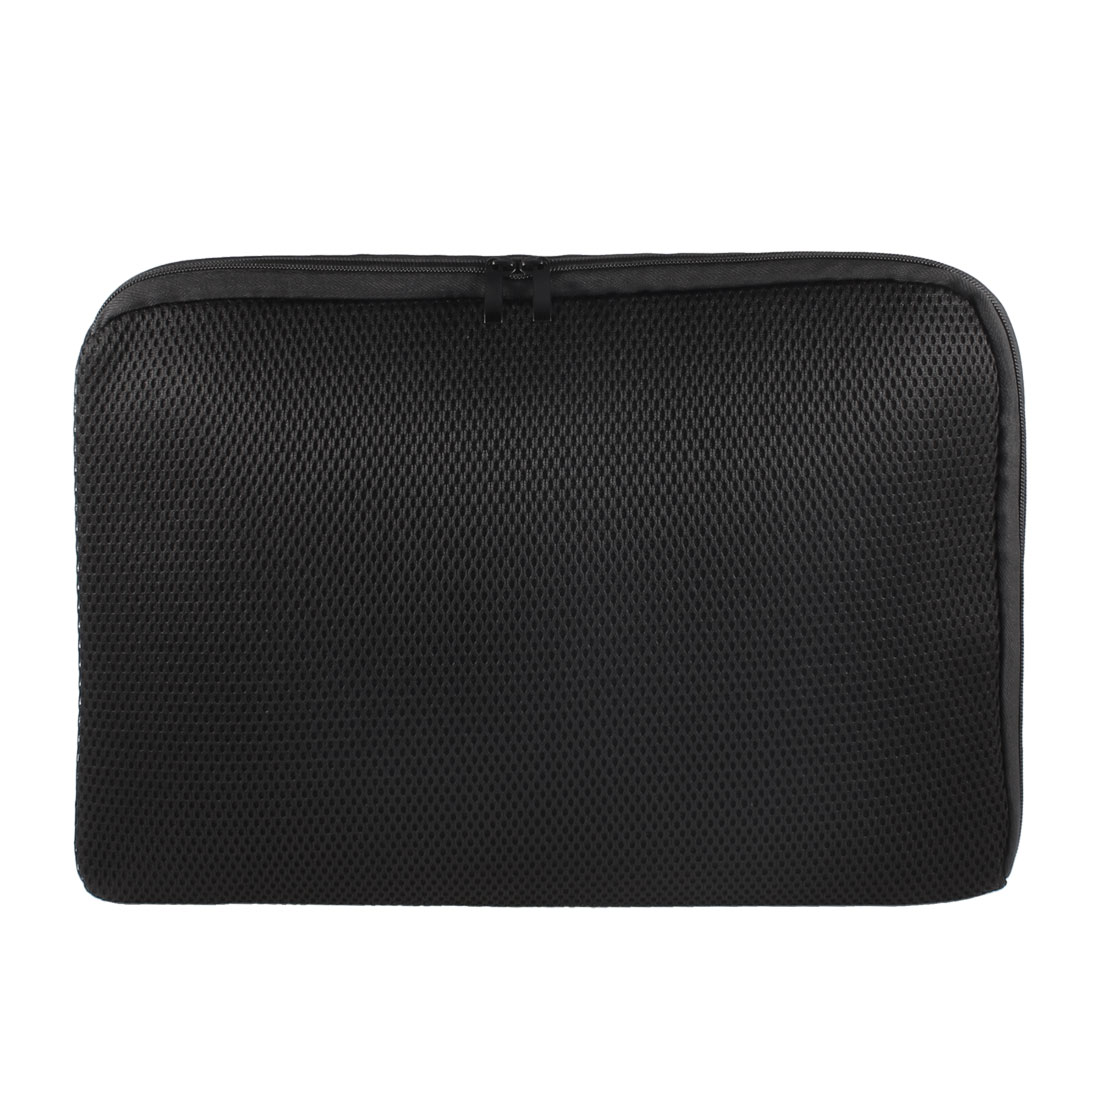 "15"" 15.4"" 15.6"" Black Mesh Notebook Laptop Sleeve Bag for HP Pavilion G6 DV6"